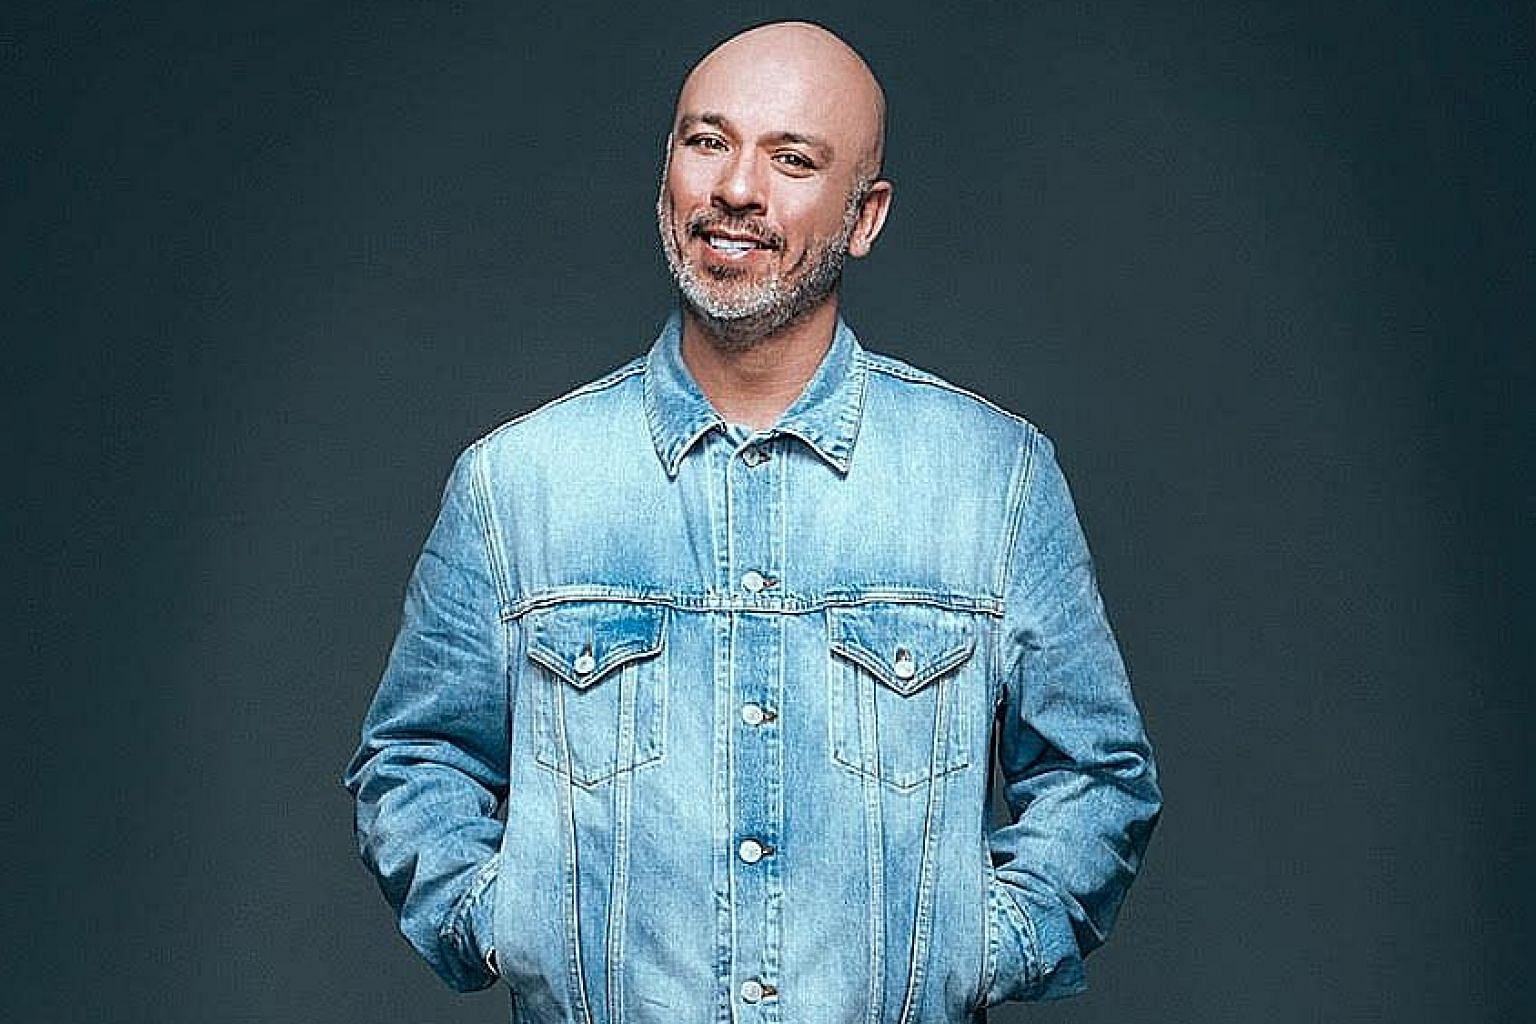 Going on stage and sharing his family stories is therapy for Jo Koy.